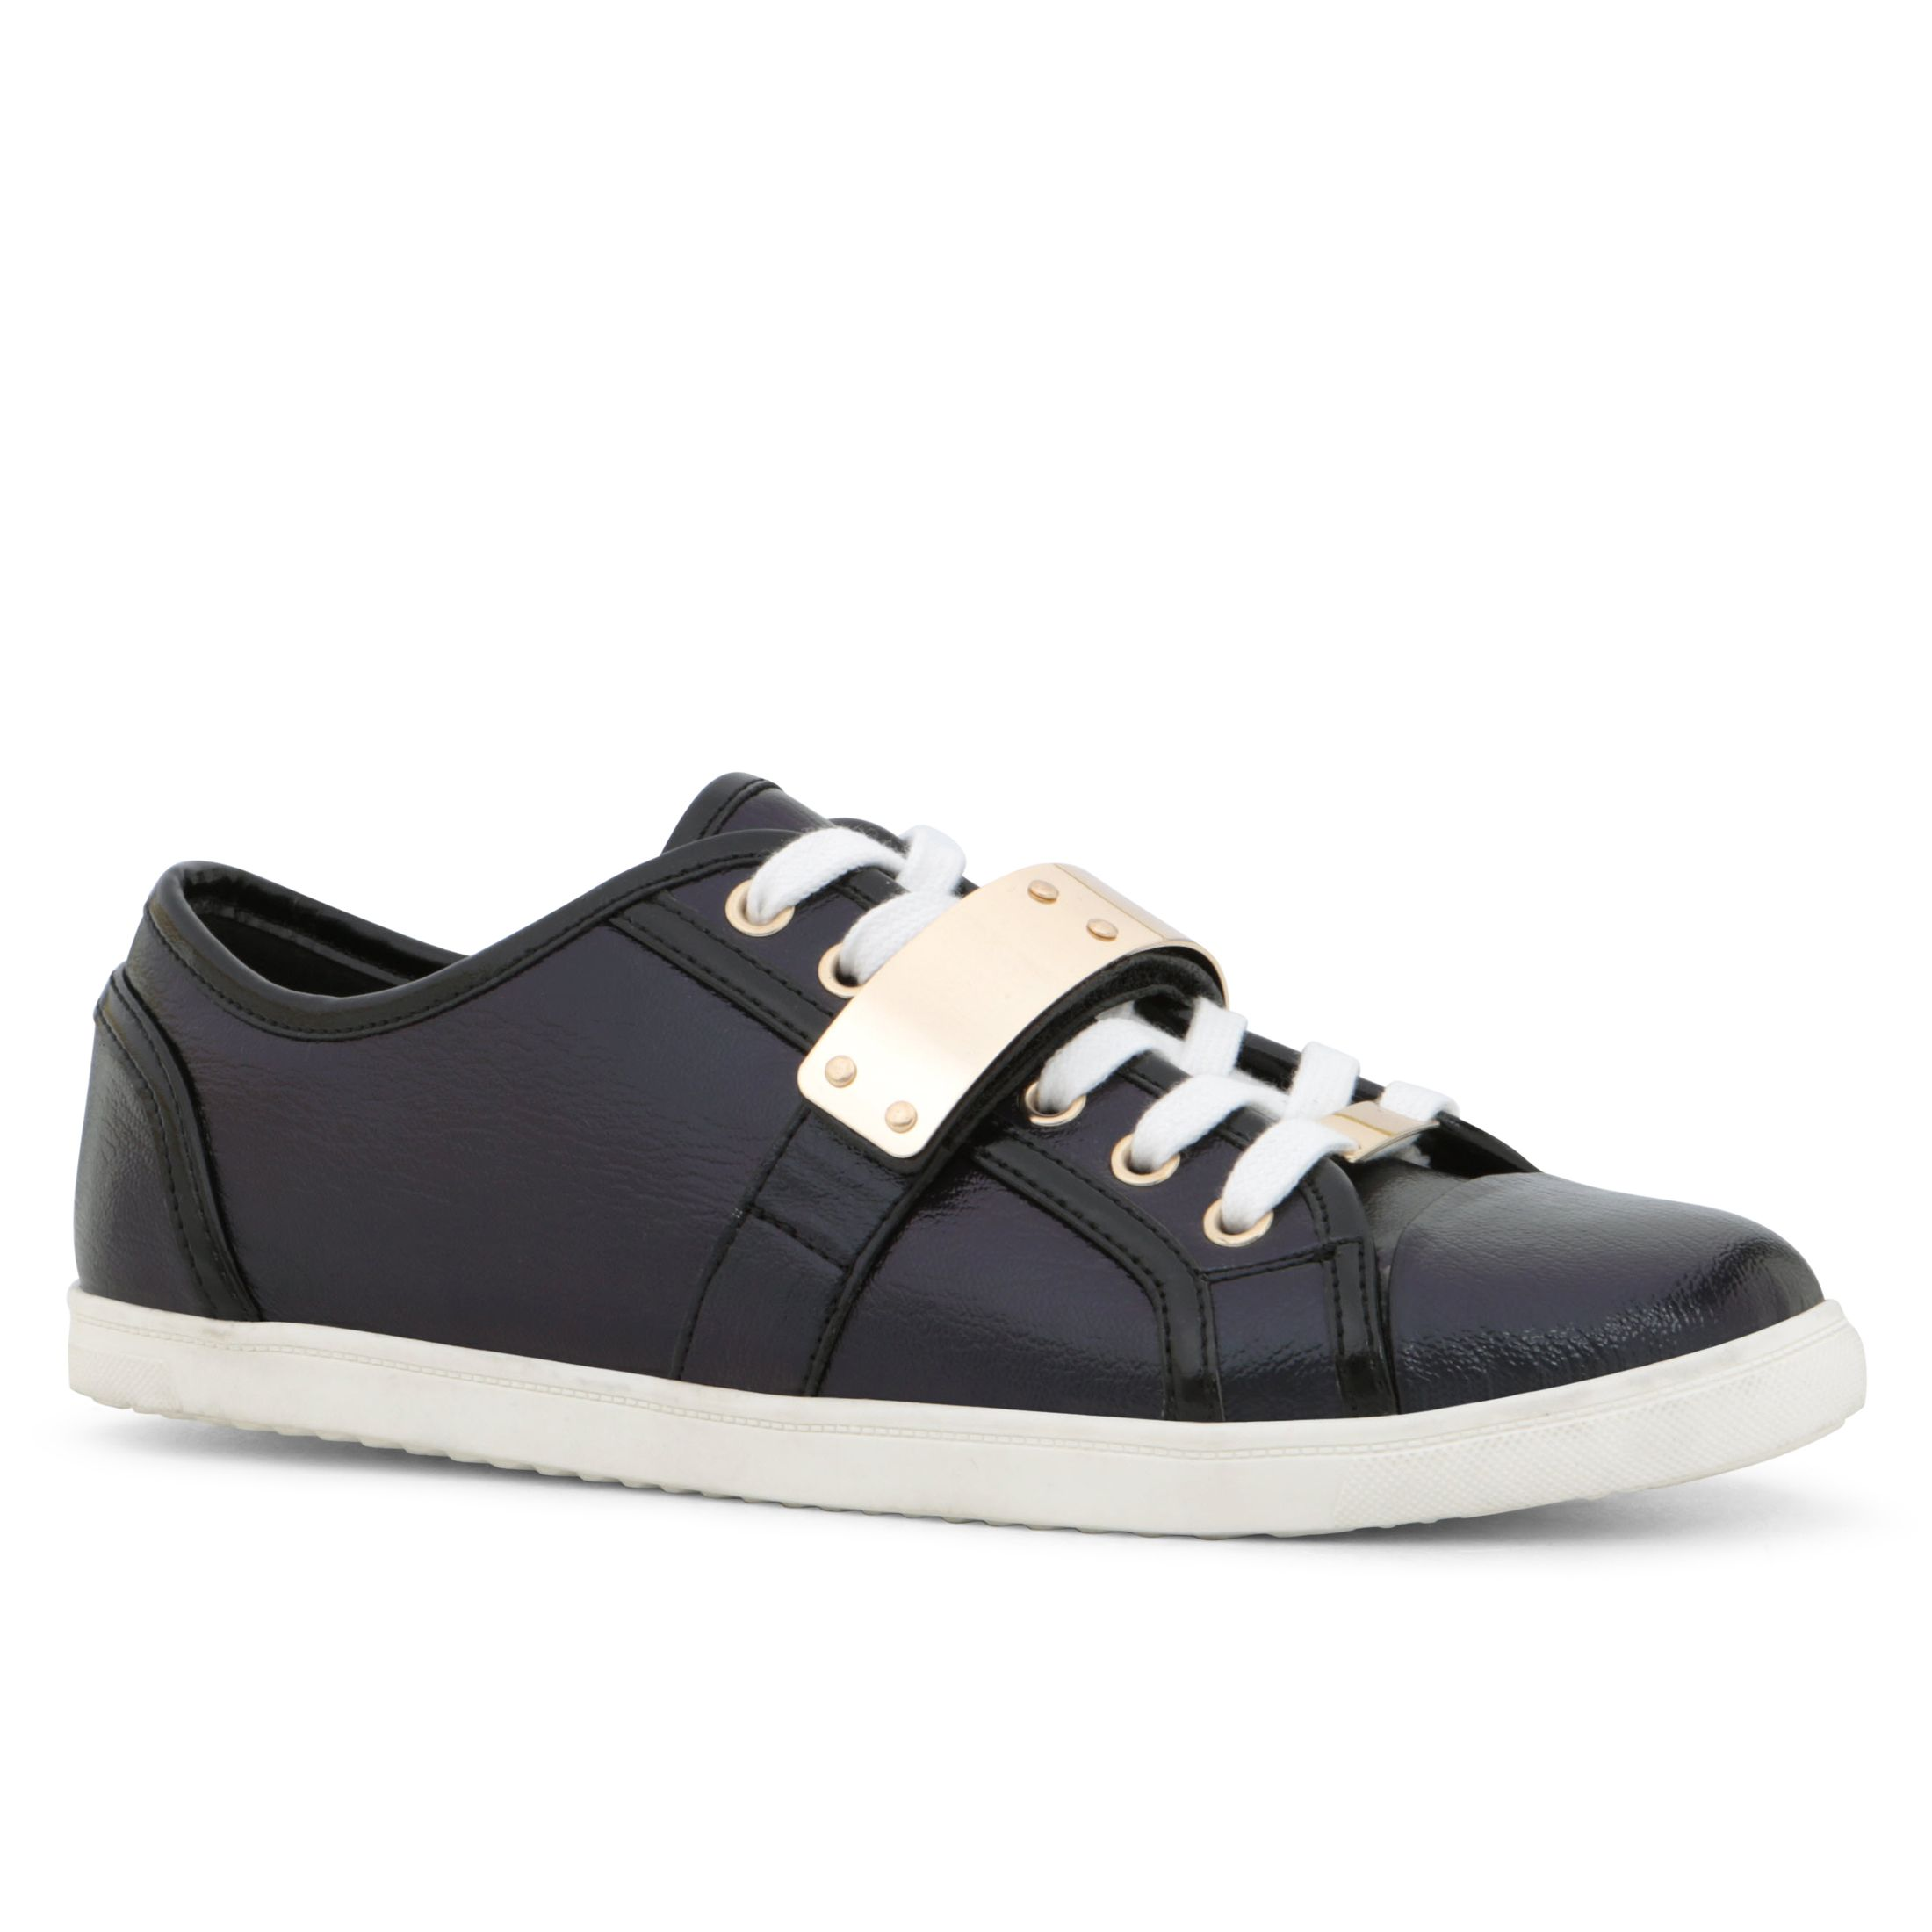 Aldo Portus lace up trainers